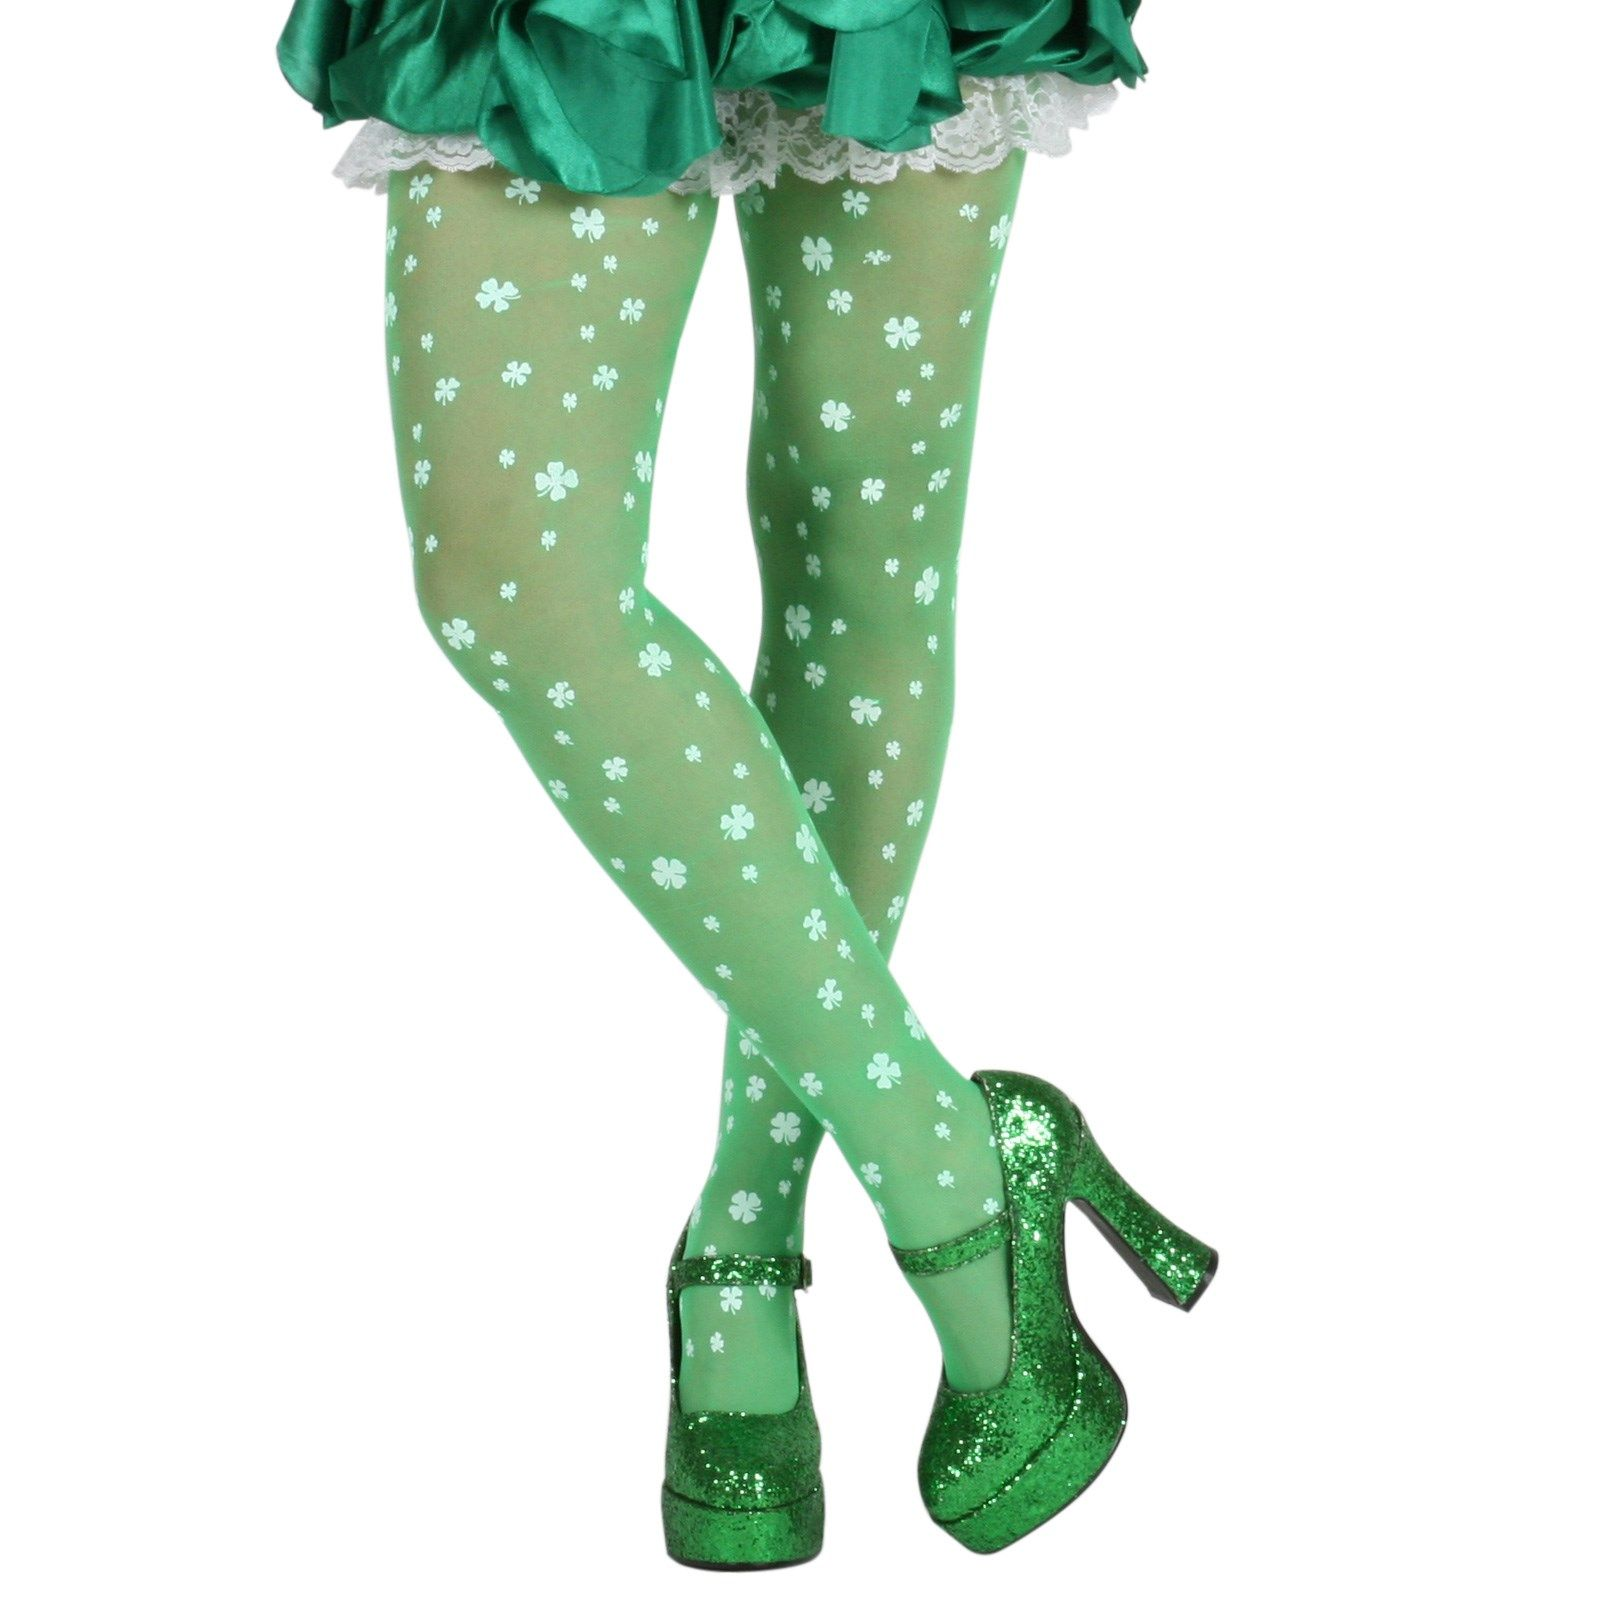 bfd08c9d74f47 18 St. Patrick's Day Outfits for Women - Green Clothing Ideas for St. Patrick's  Day 2019